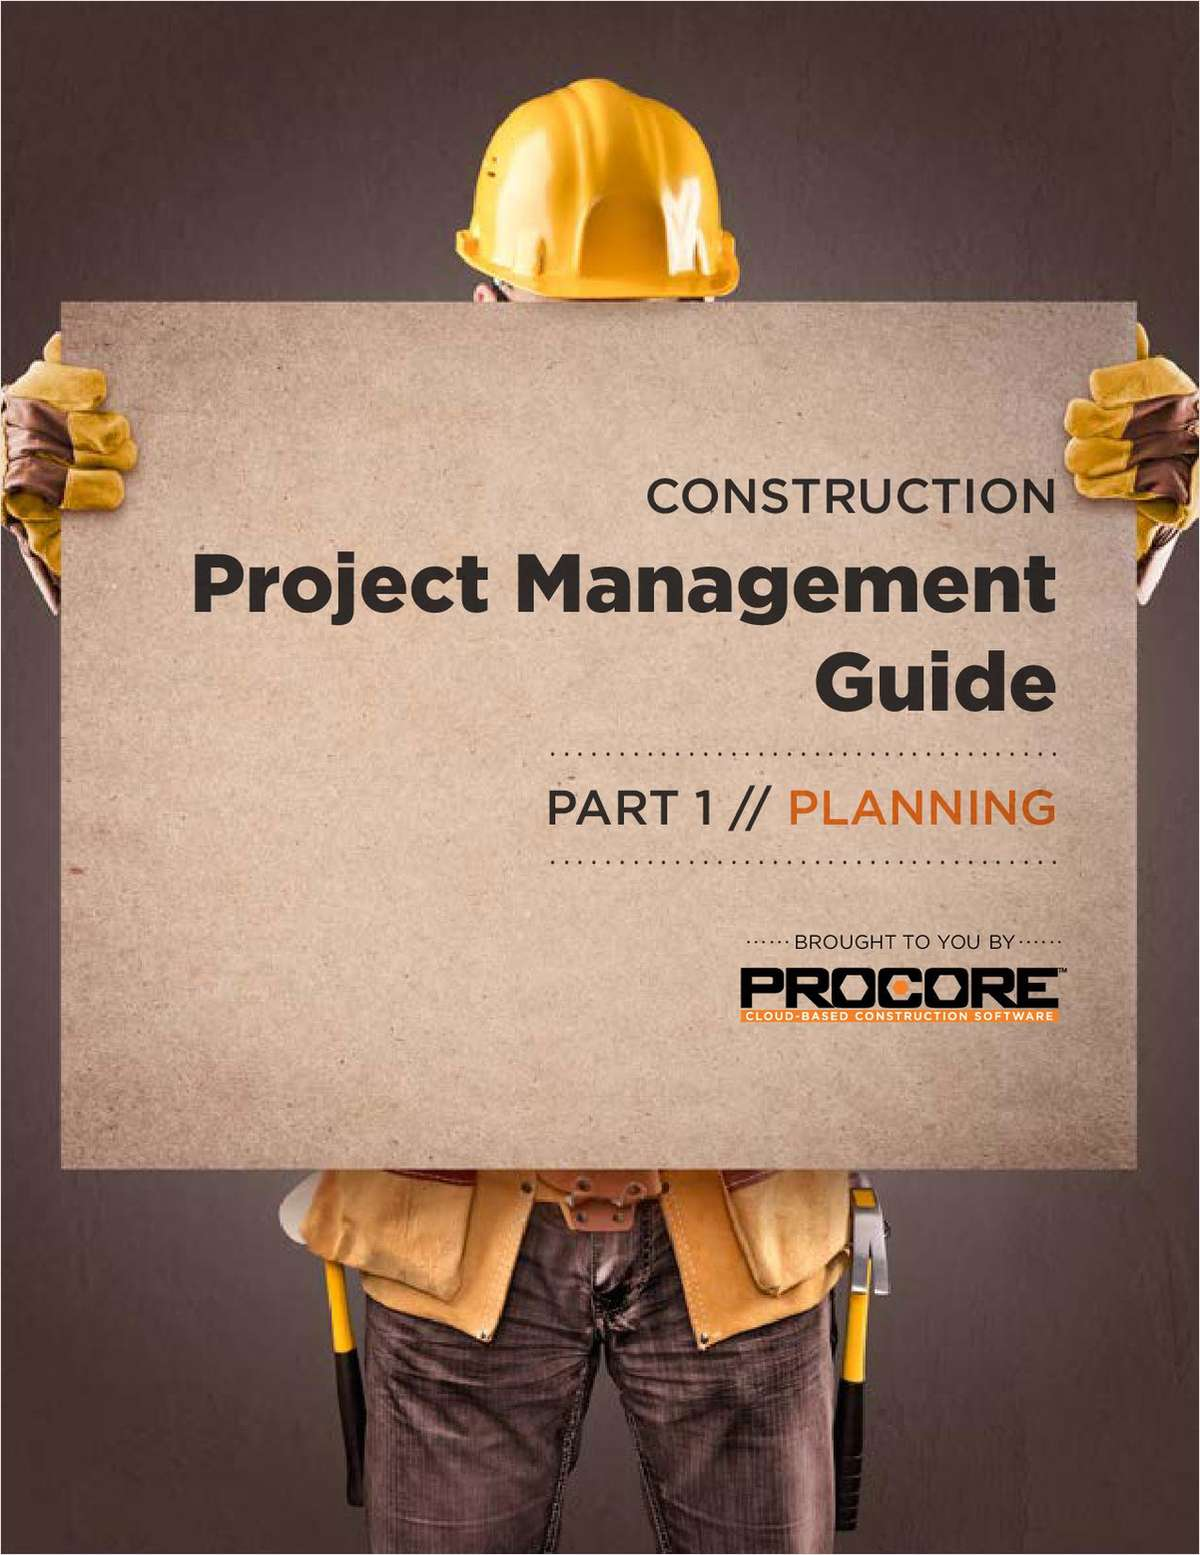 Construction Project Management Guide